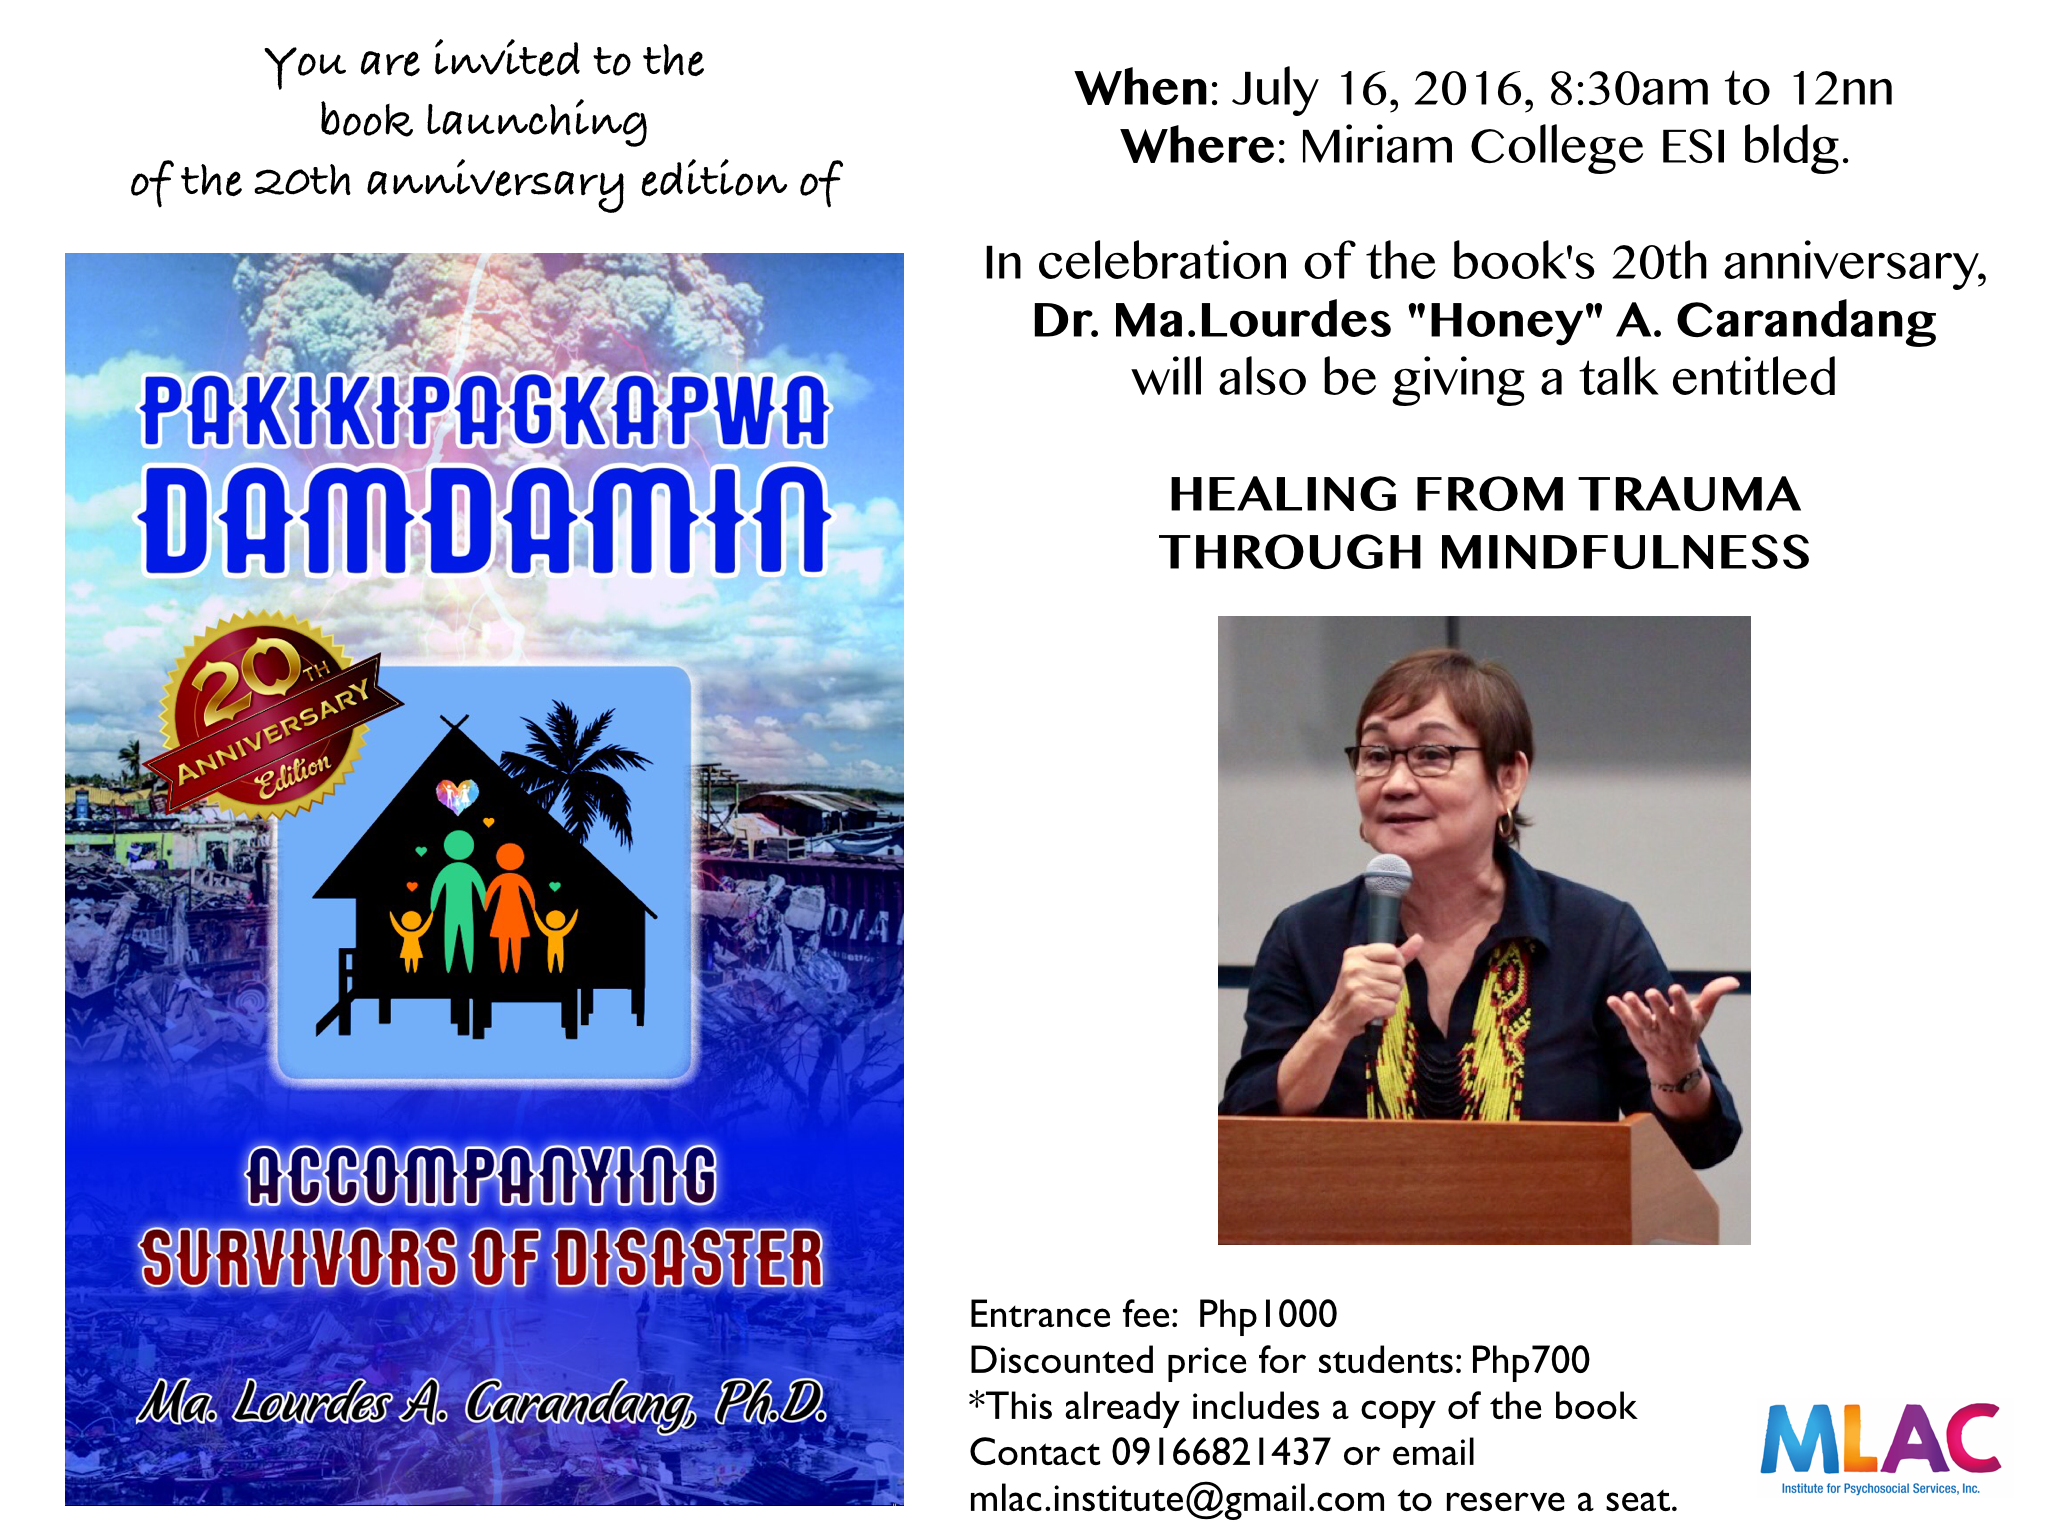 You are all invited to the launch of the 20th anniversary edition of  Pakikipagkapwa-Damdamin on July 16, 2016. Entrance fee already includes a  free copy of PlusPng.com  - Pakikipagkapwa PNG